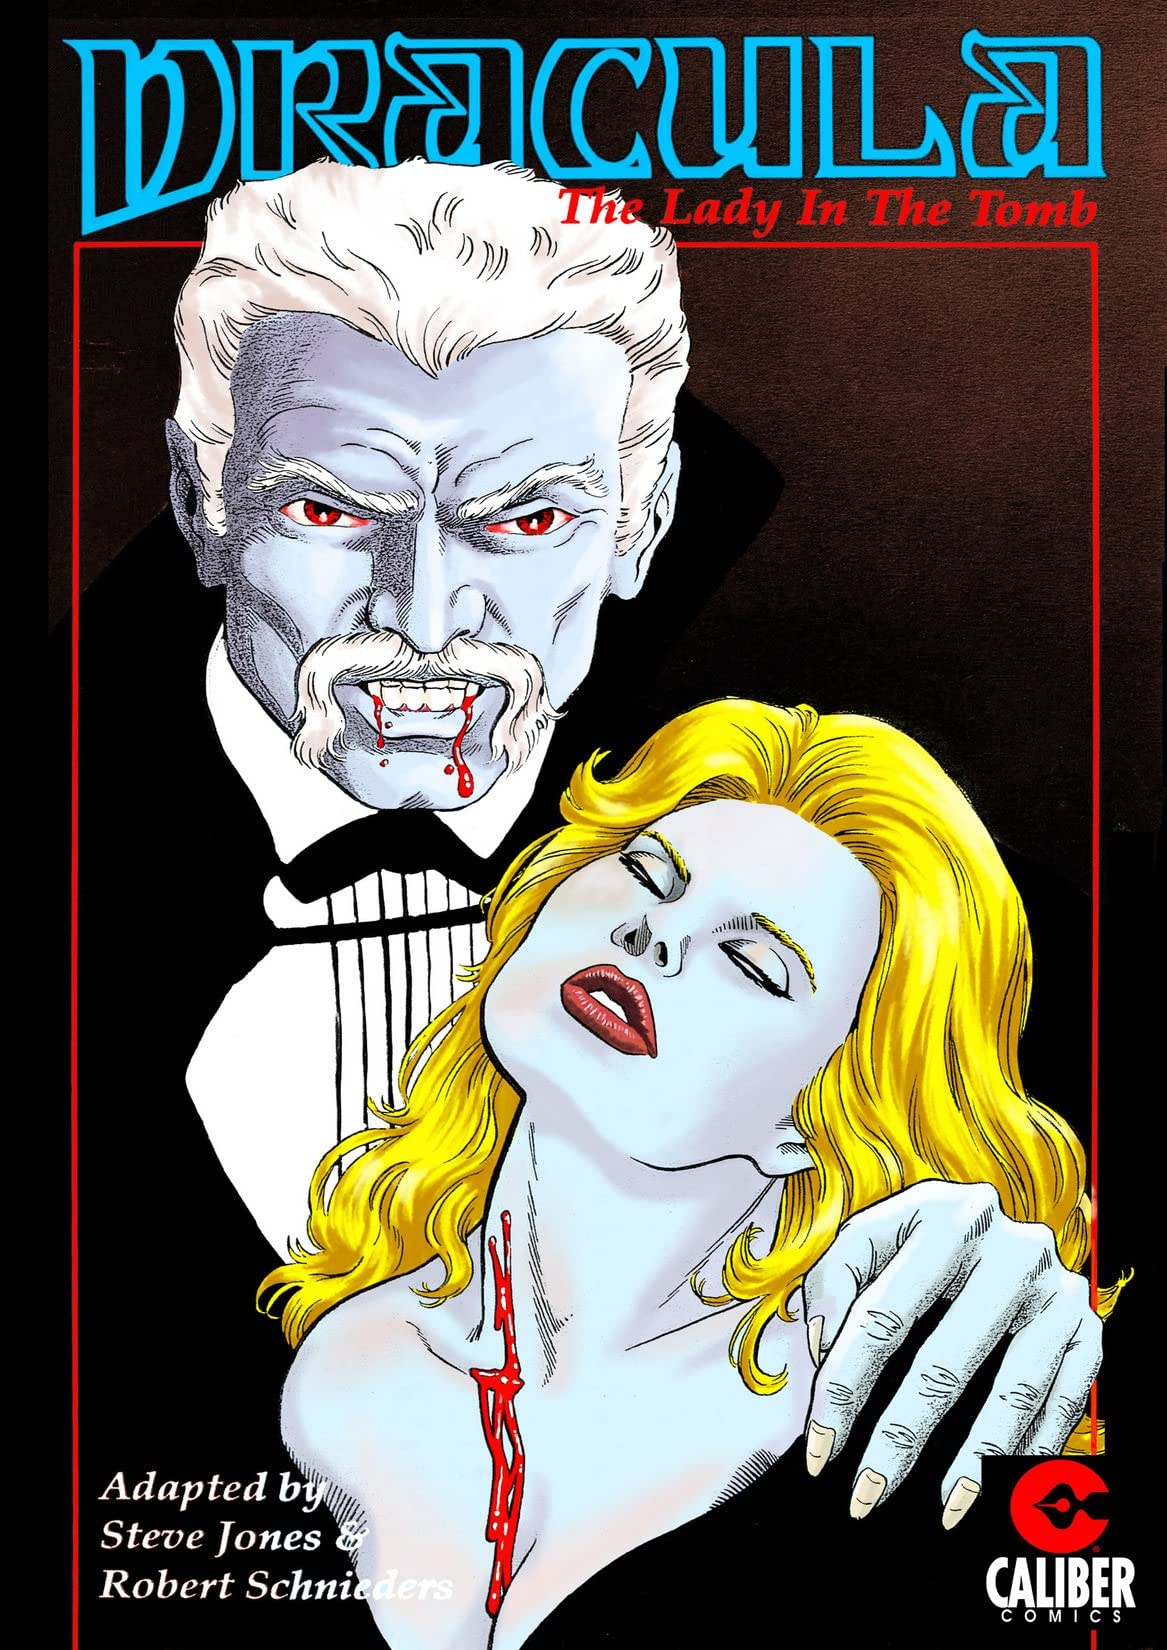 Dracula: Lady in the Tomb #1